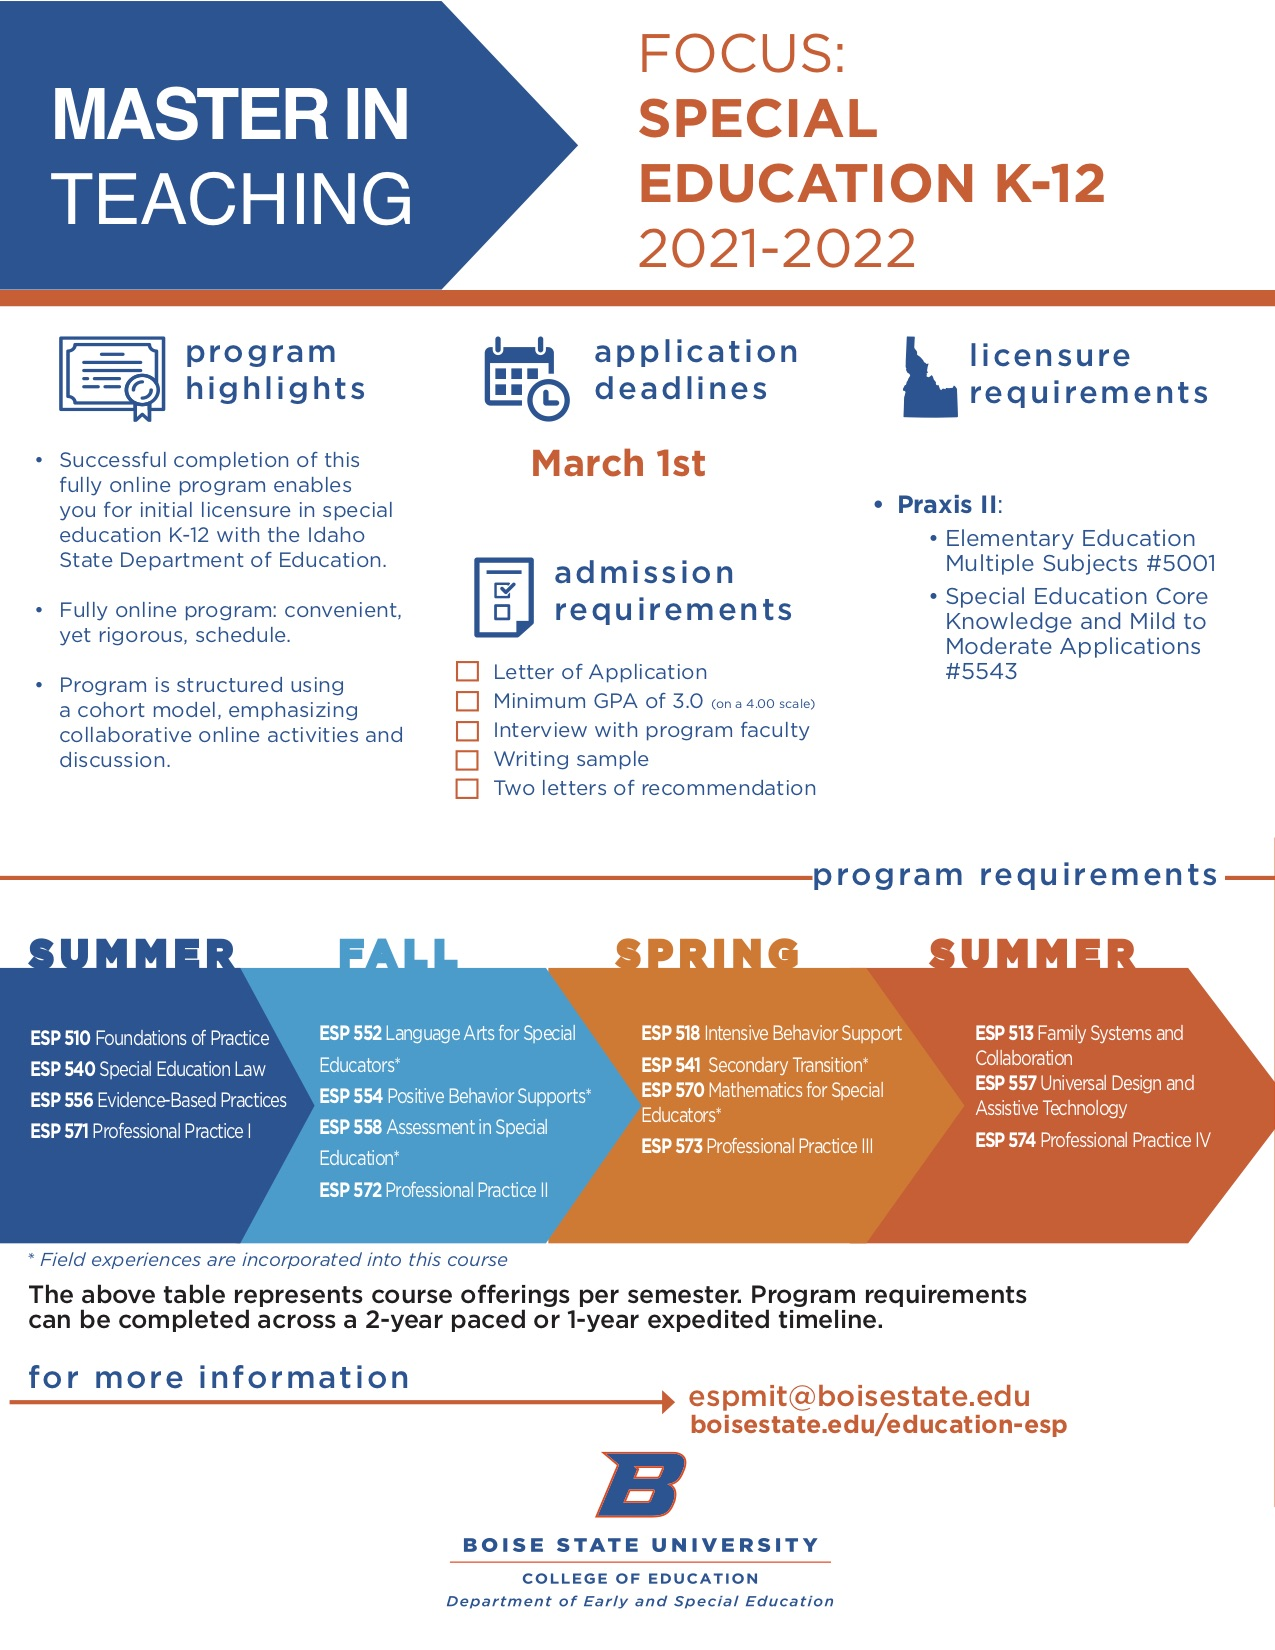 Visual Advising Guide for the Master in Teaching Focus: Special Education K-12 2021-2022